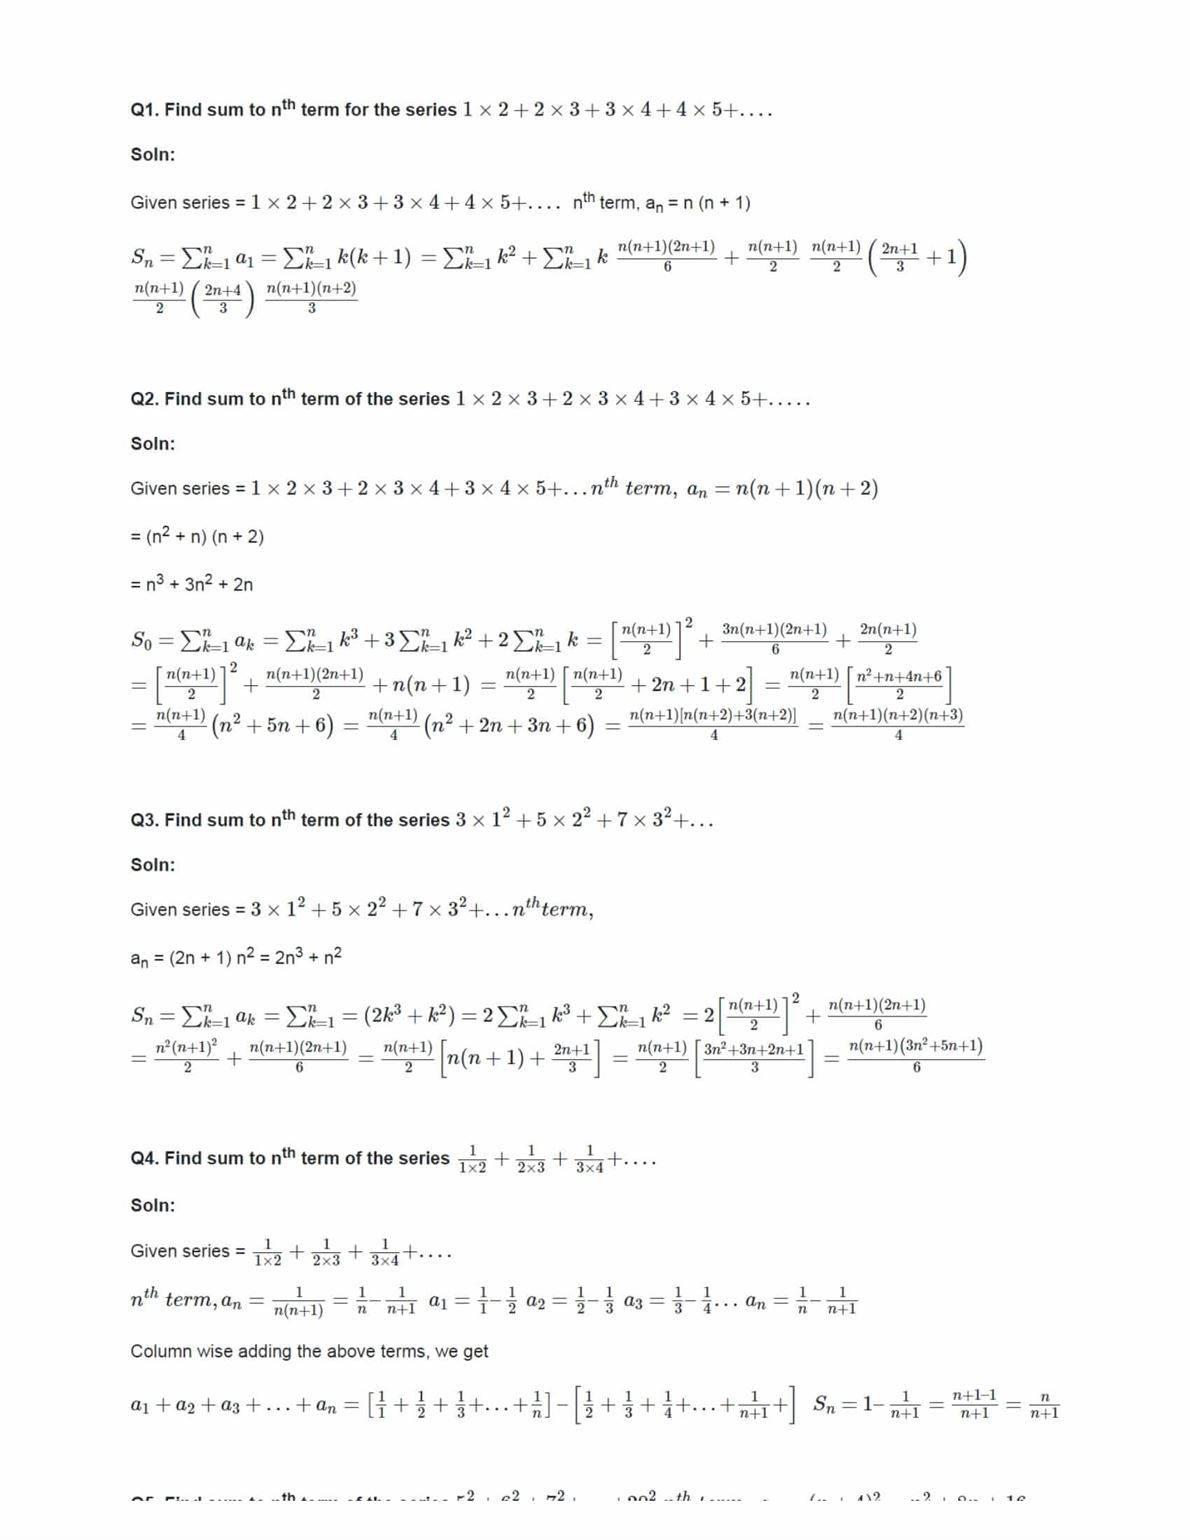 Class 11 Maths Ncert Solutions Chapter 9 Ex 9.4